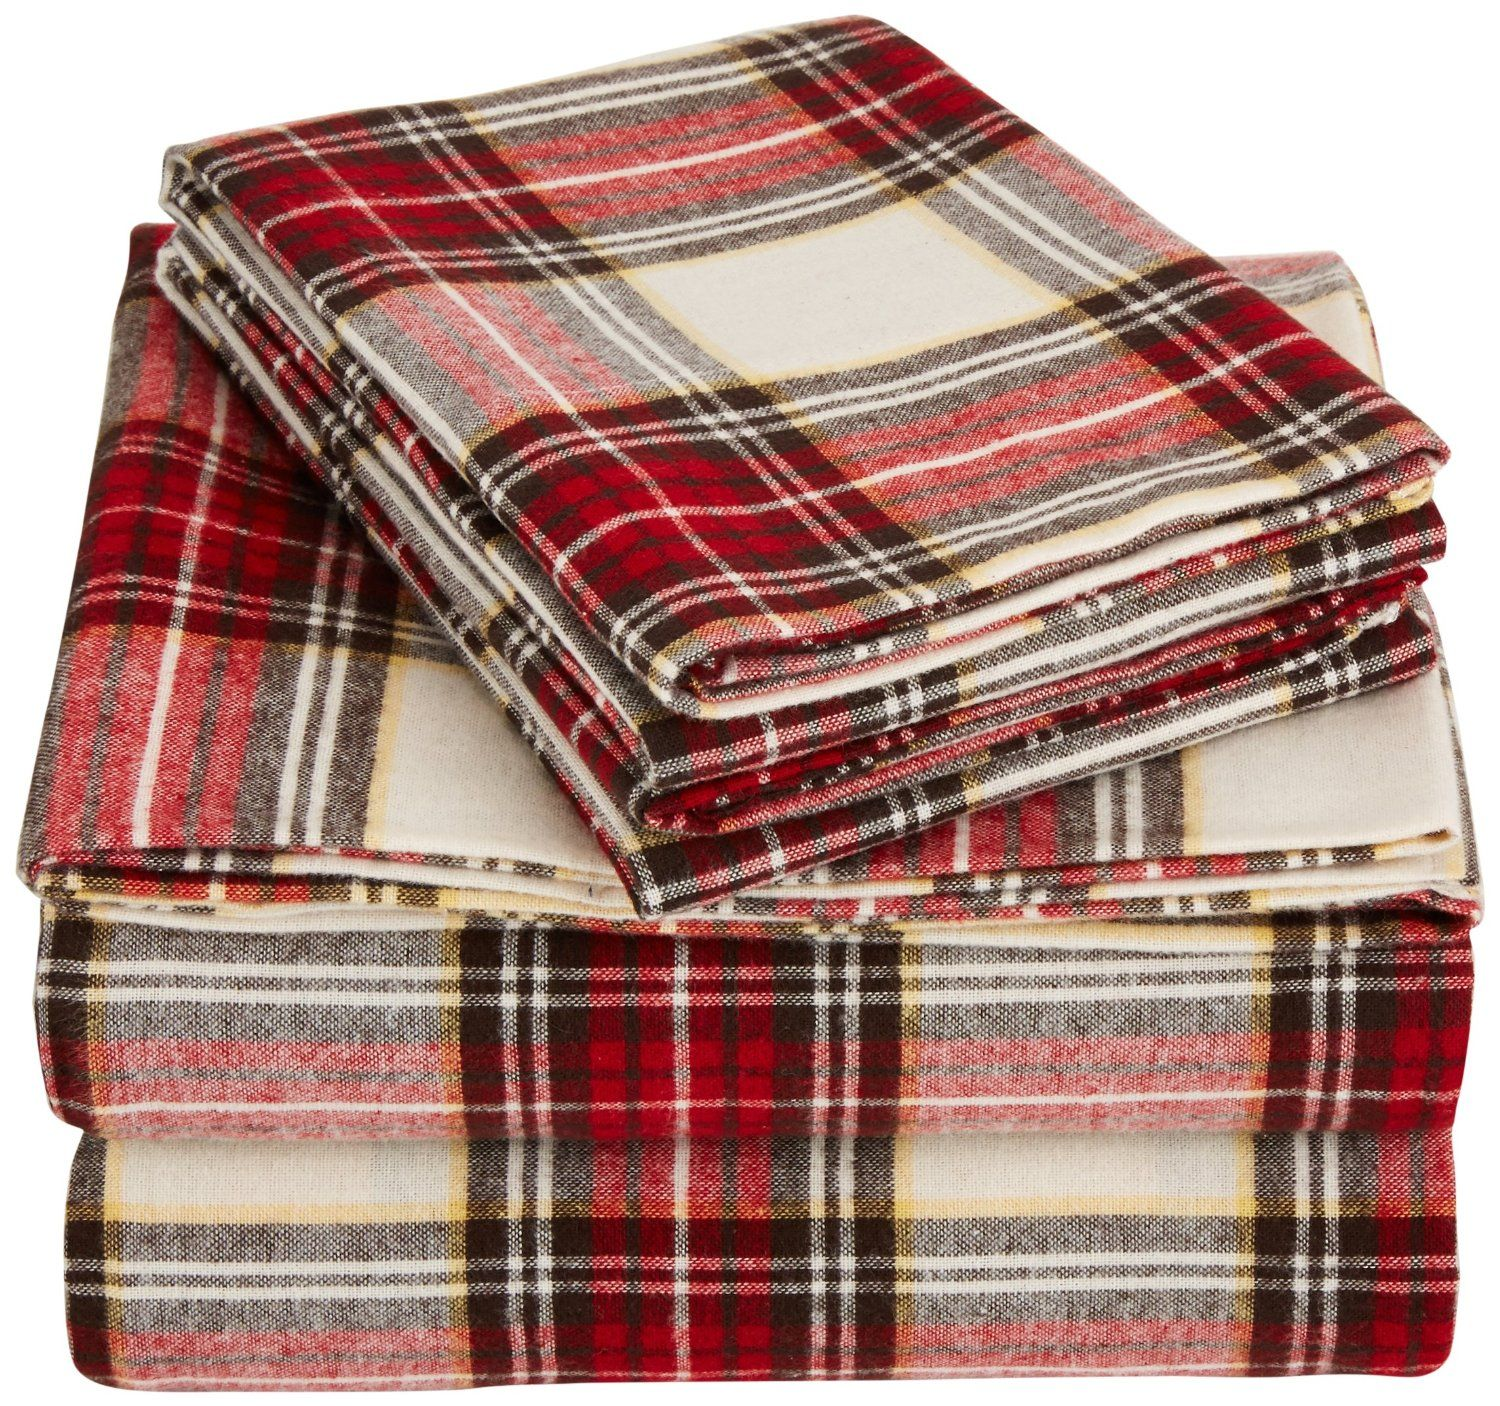 flannel sheet set queen creamred plaid - Flannel Sheets Queen